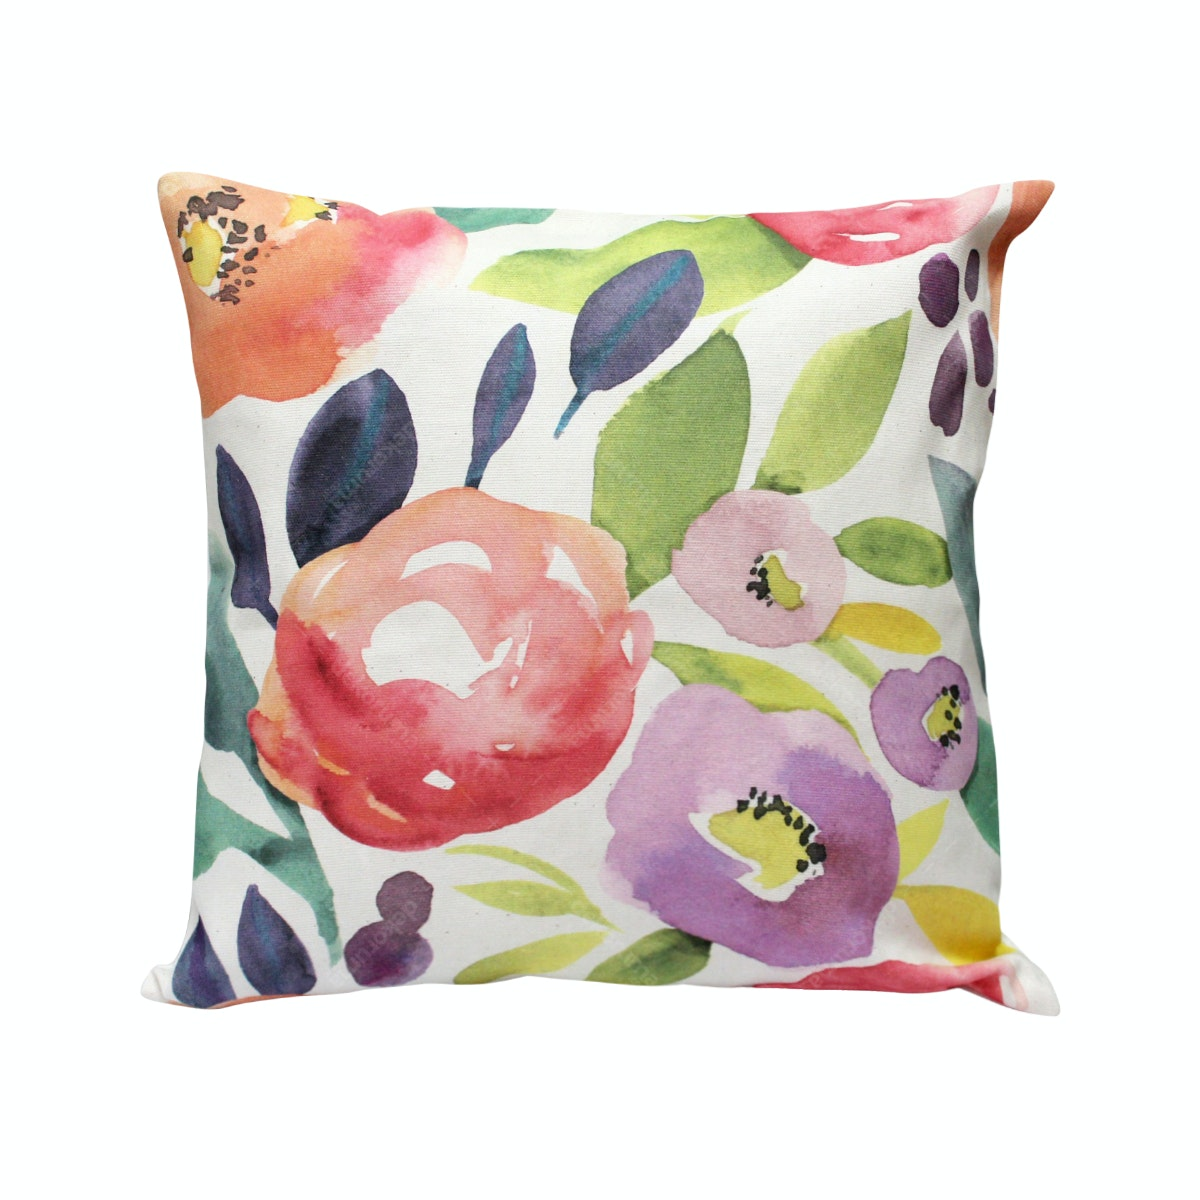 Seruni Living Cushion Cover Bunga MariGold 45x45cm